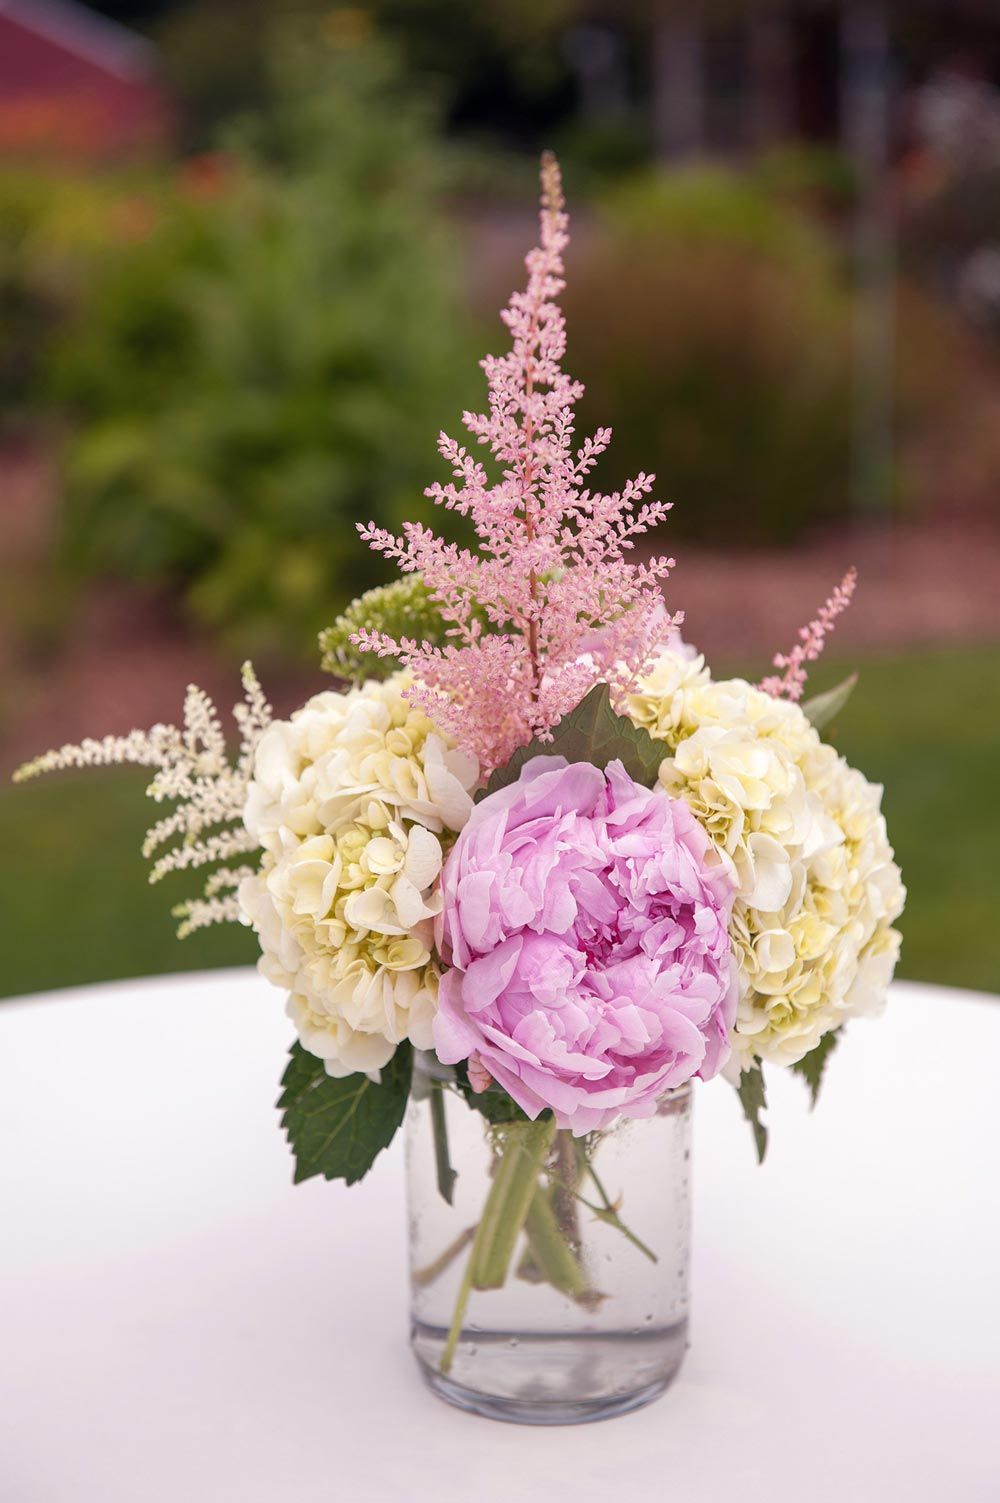 September Wedding Flowers: What\'s in Season | Emily ryan | Pinterest ...